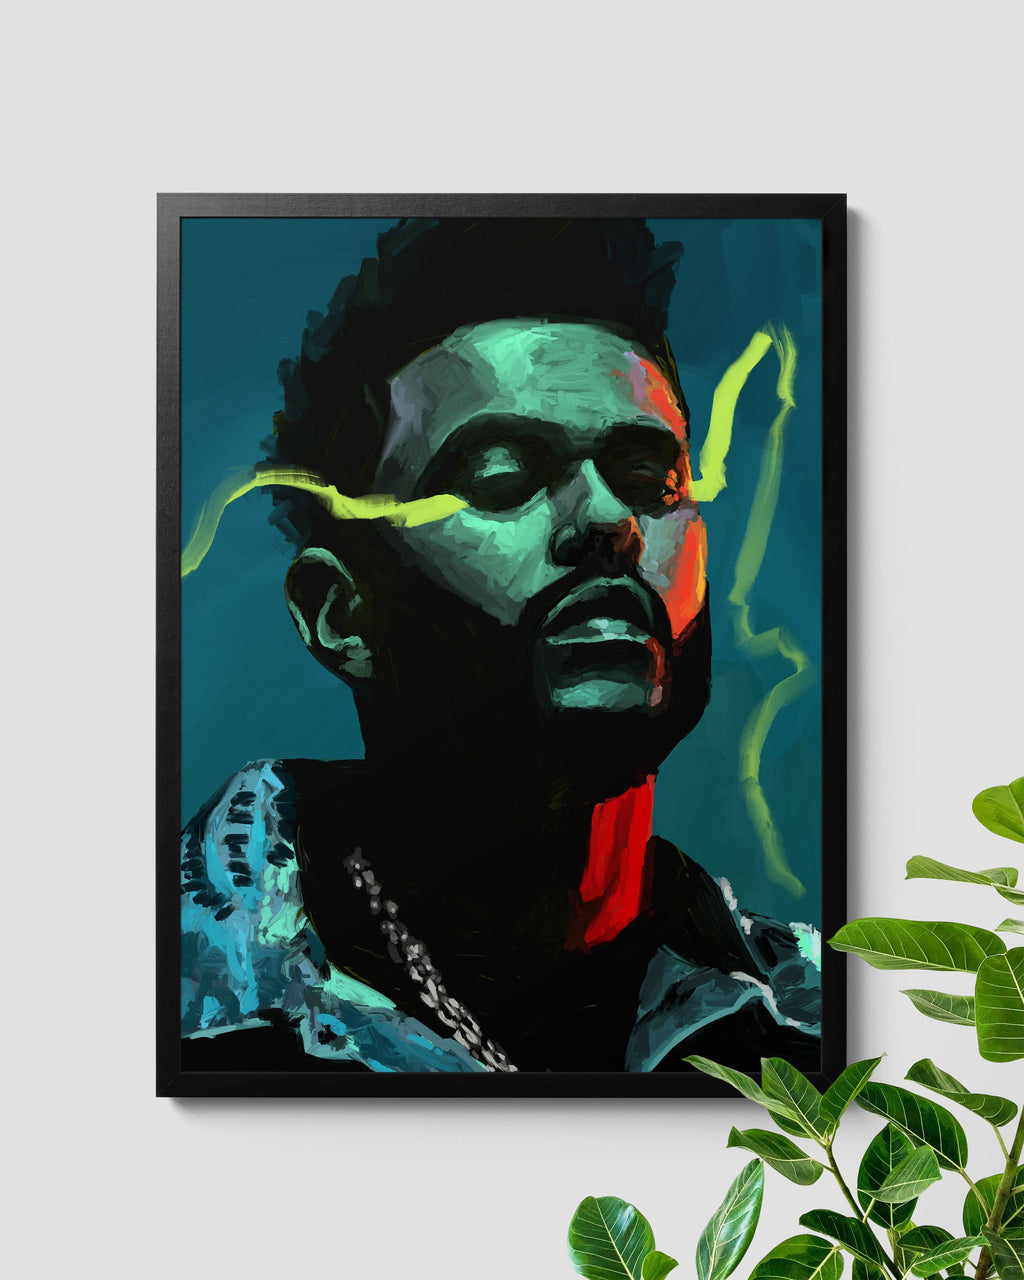 The Weeknd Starboy Poster - Nashid Chroma